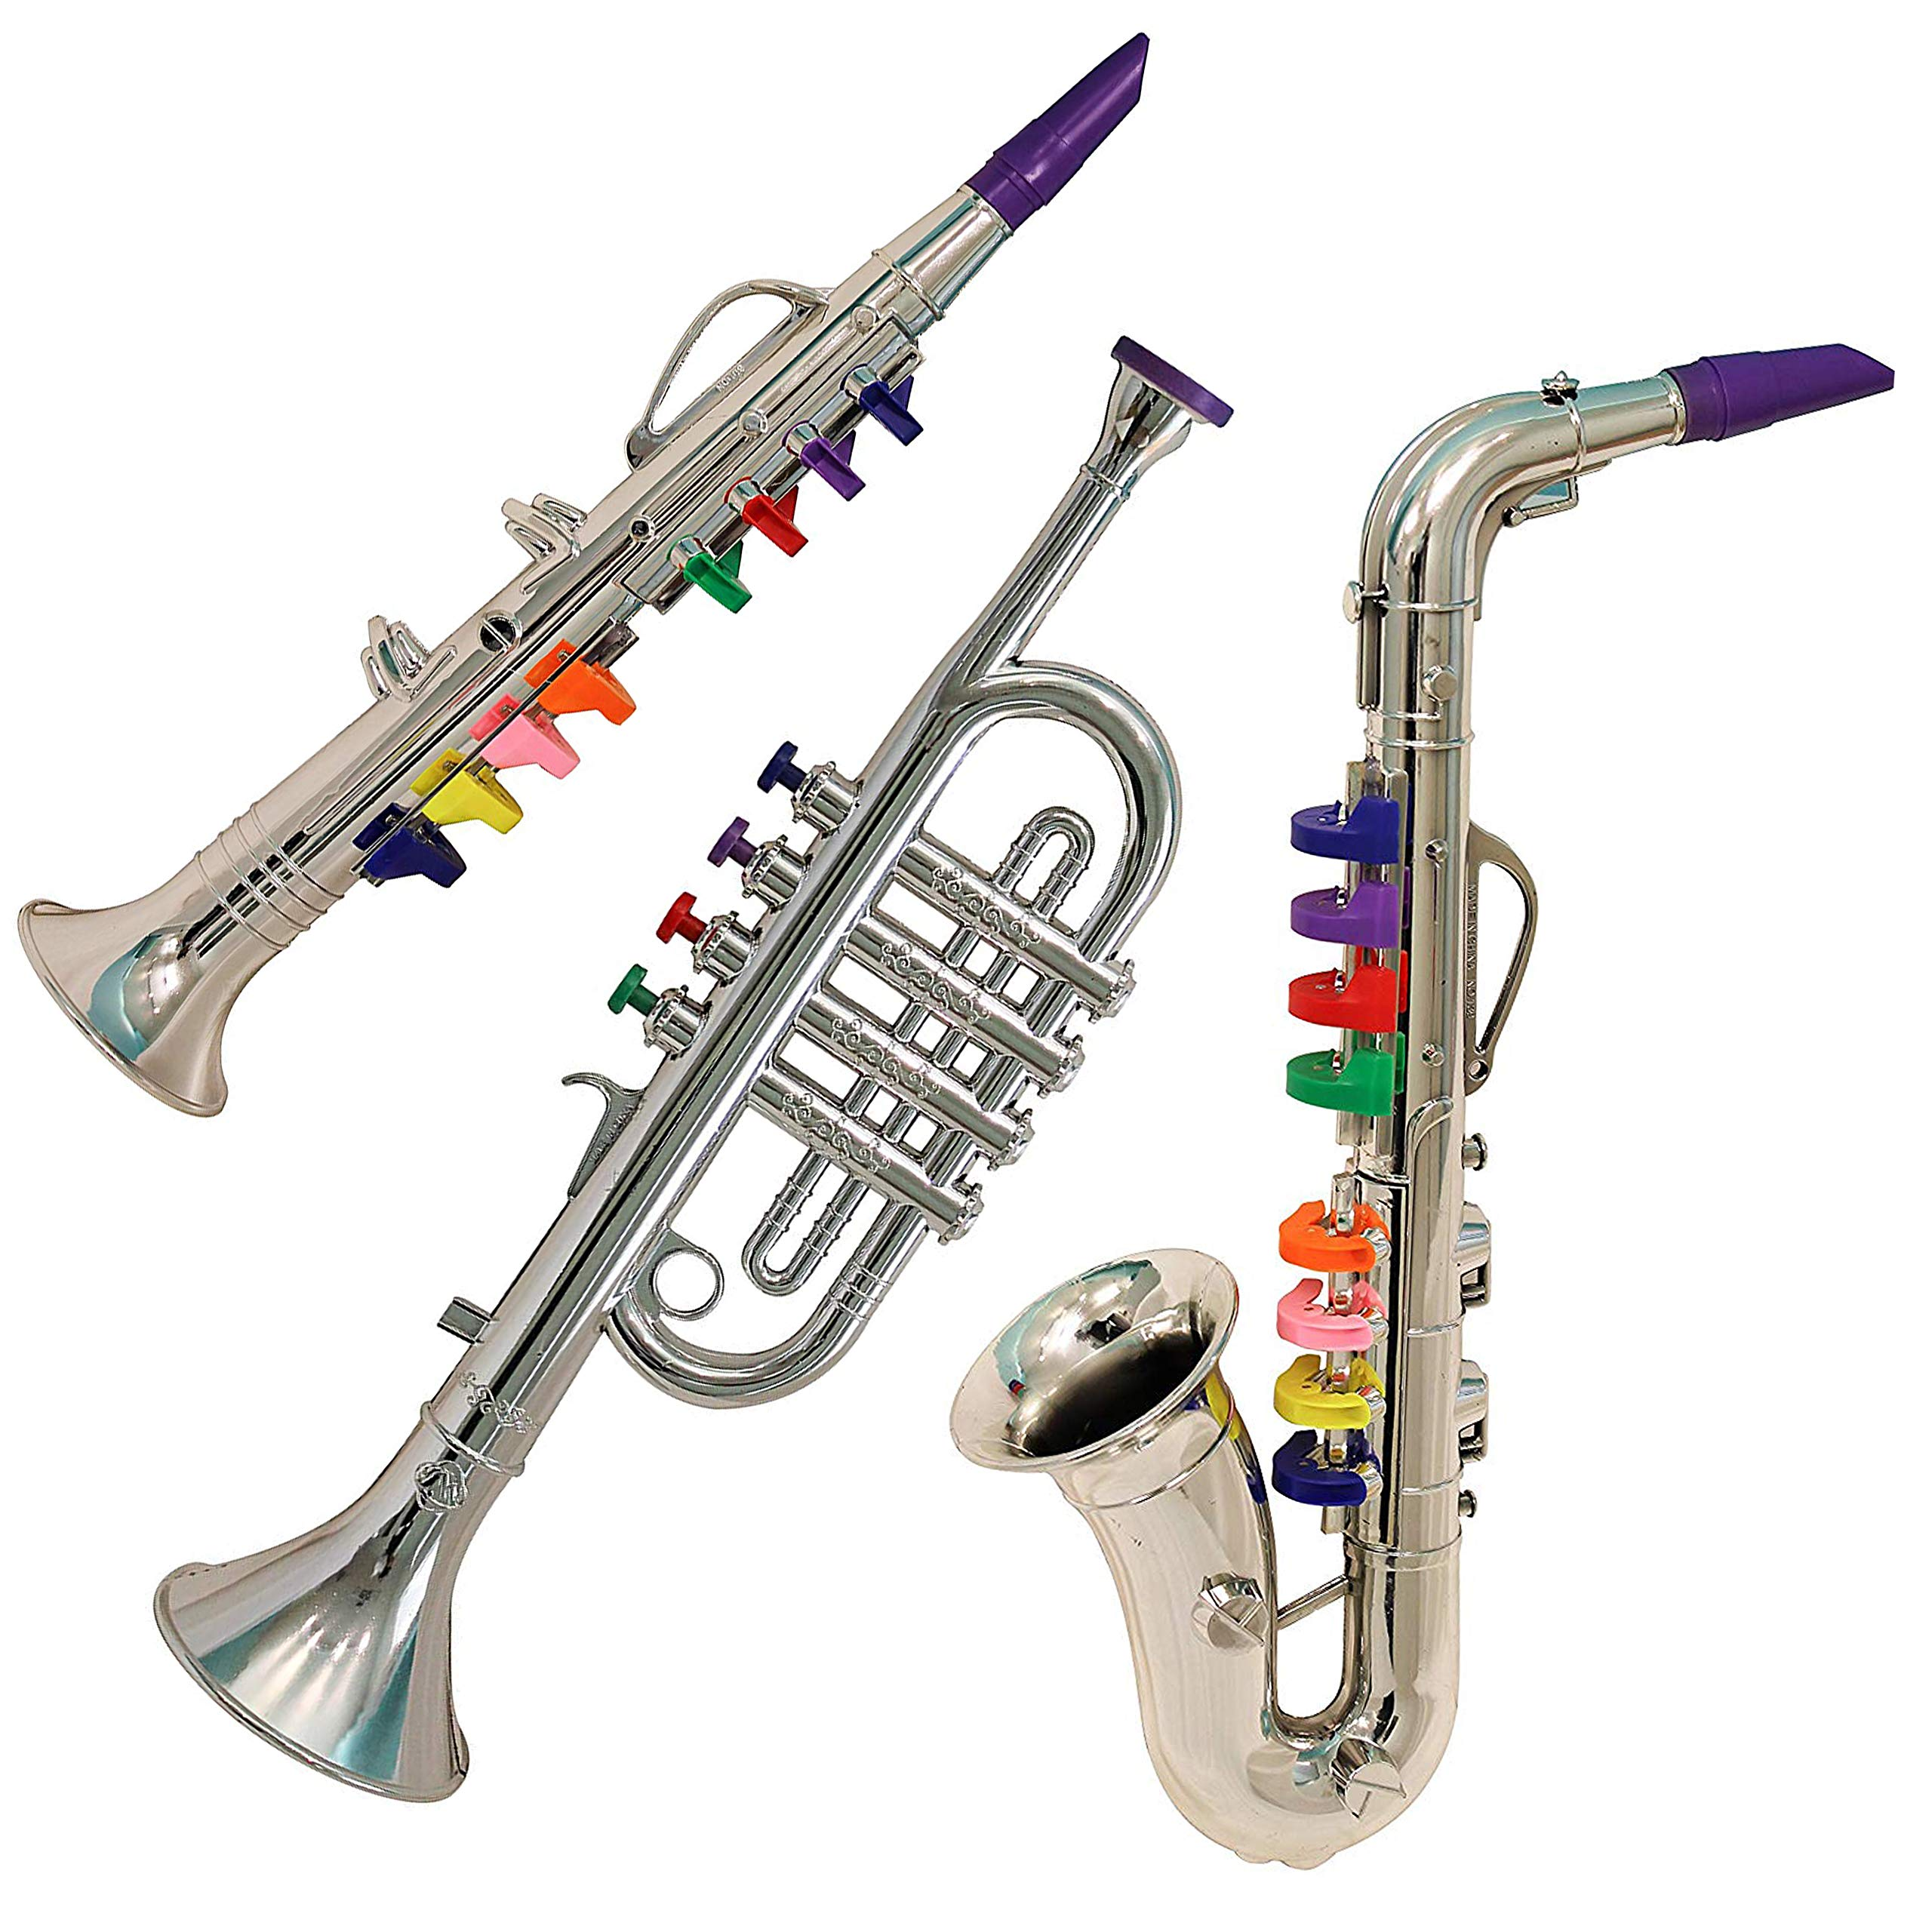 IQ Toys Junior Band 3-Piece Instrument Set (Clarinet, Saxophone, Trumpet) by IQ Toys